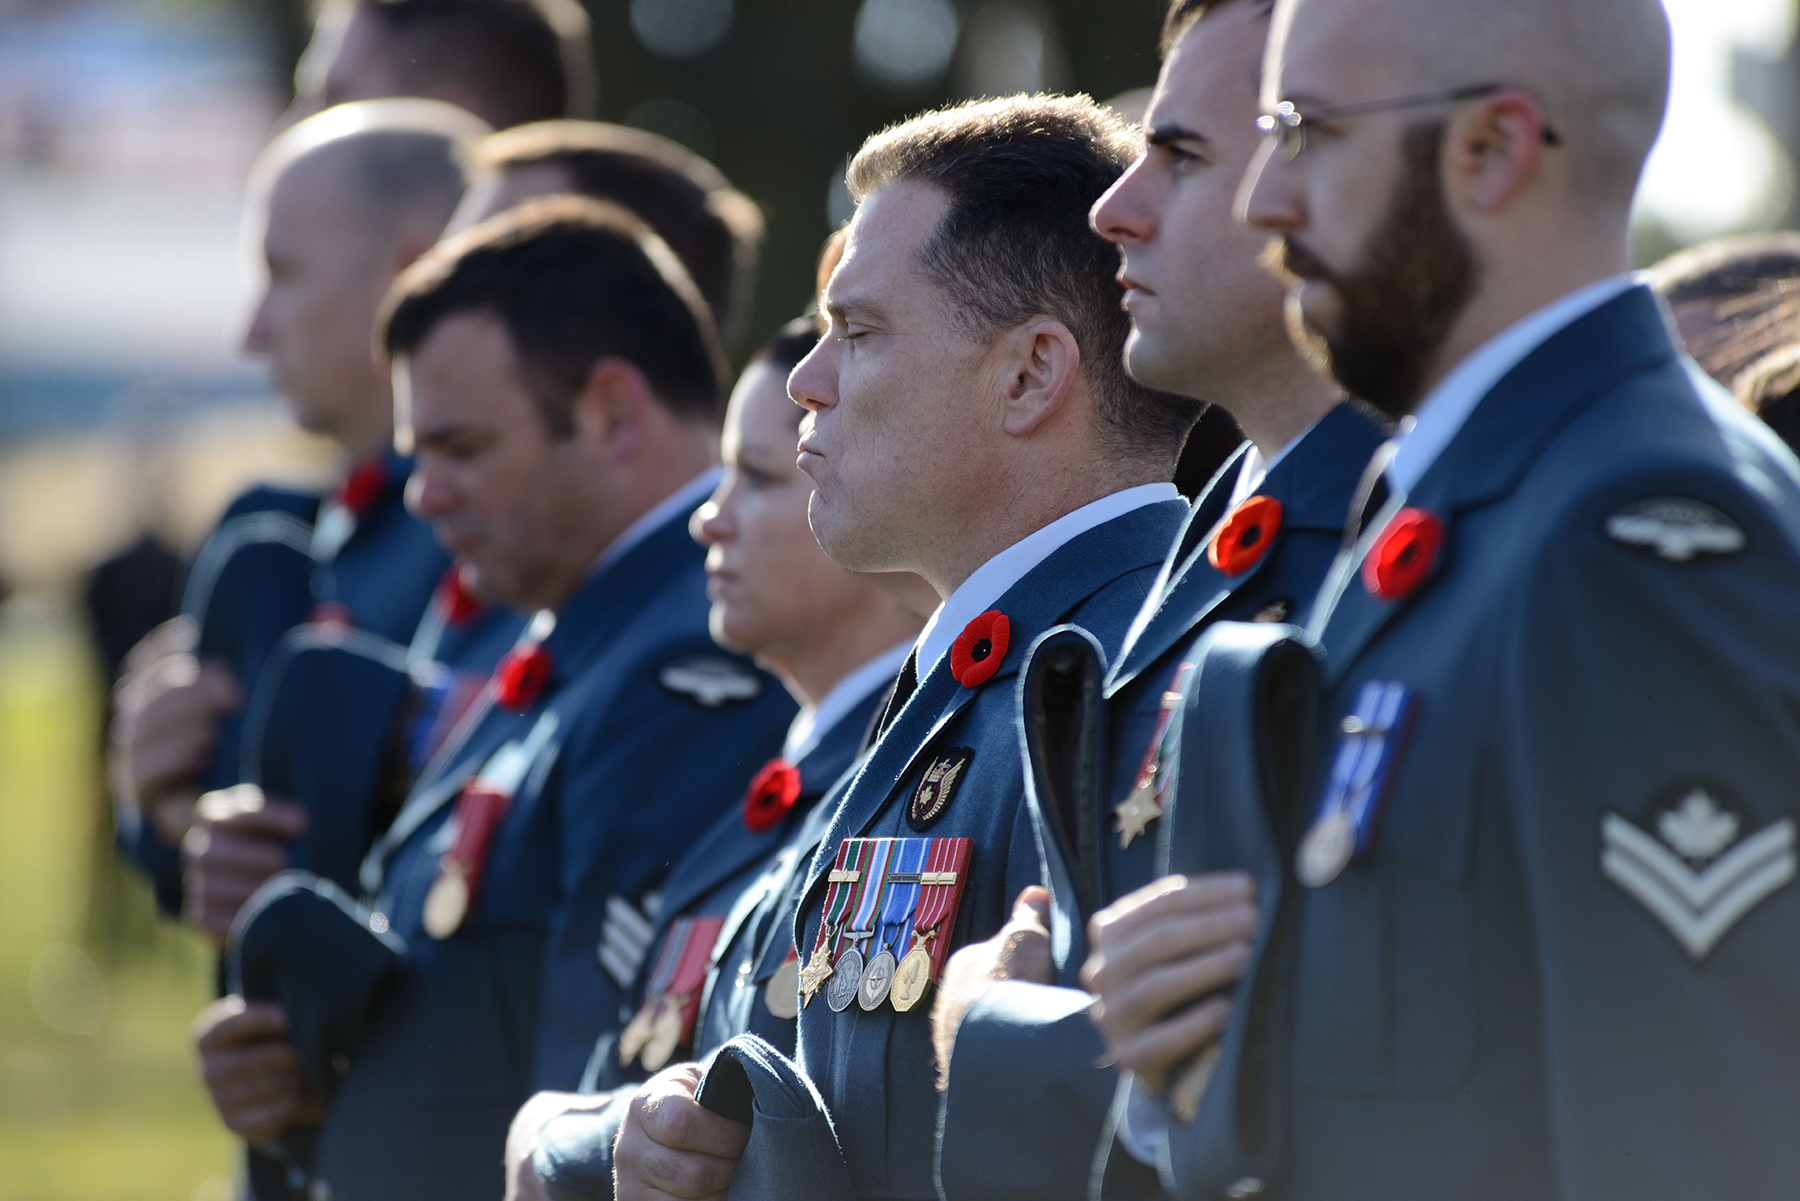 On November 8, 2015, Canadian Forces School of Aerospace Technology and Engineering members pass two minutes of silence in reflection during the Aurora, Ontario, Remembrance Day parade. PHOTO: Sergeant Hagop Vanayan